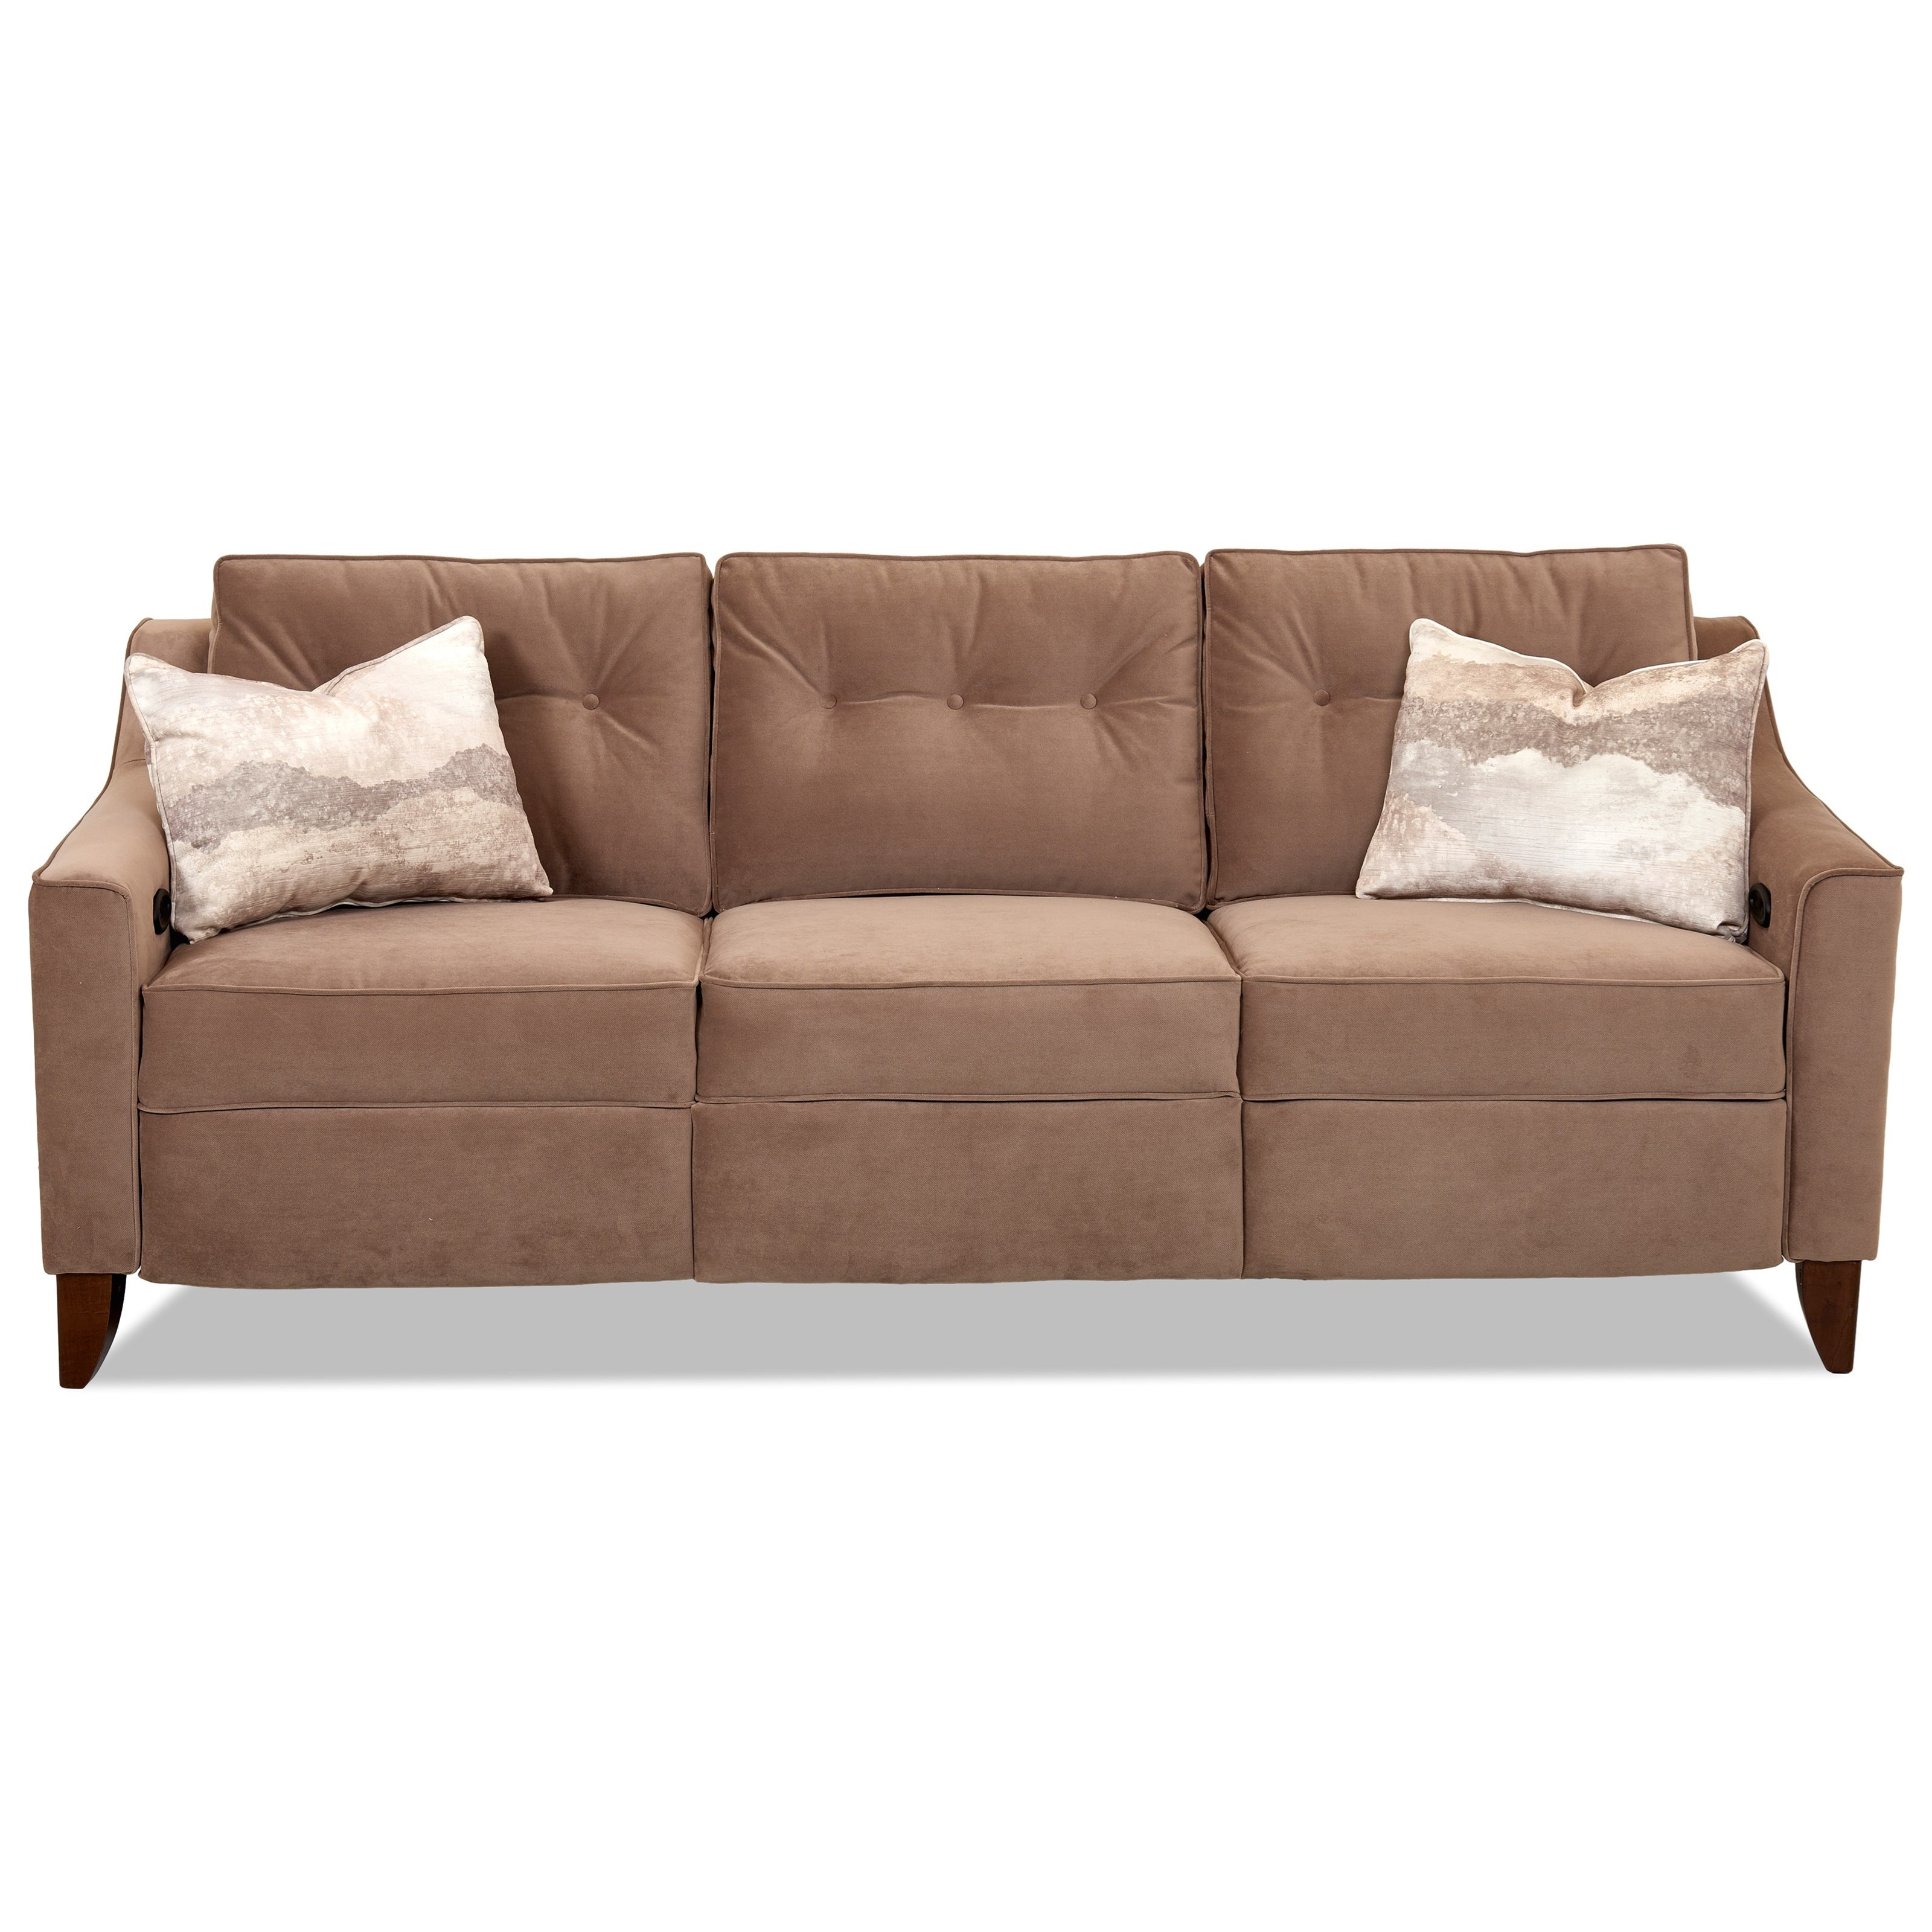 Audrina Power Reclining Sofa by Klaussner at Wayside Furniture